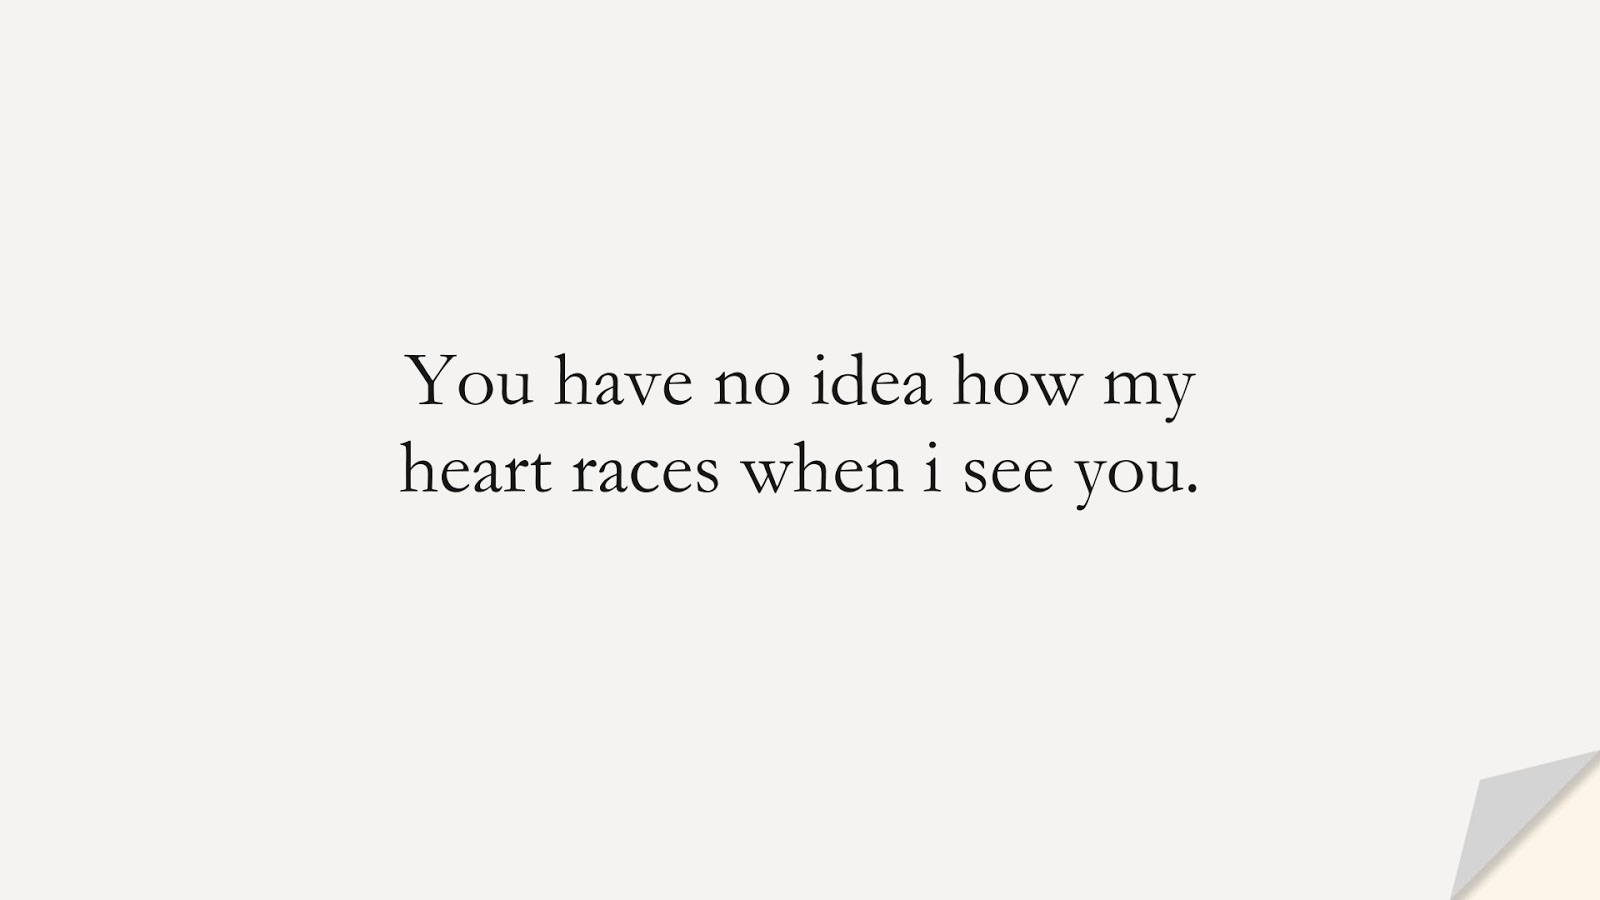 You have no idea how my heart races when i see you.FALSE